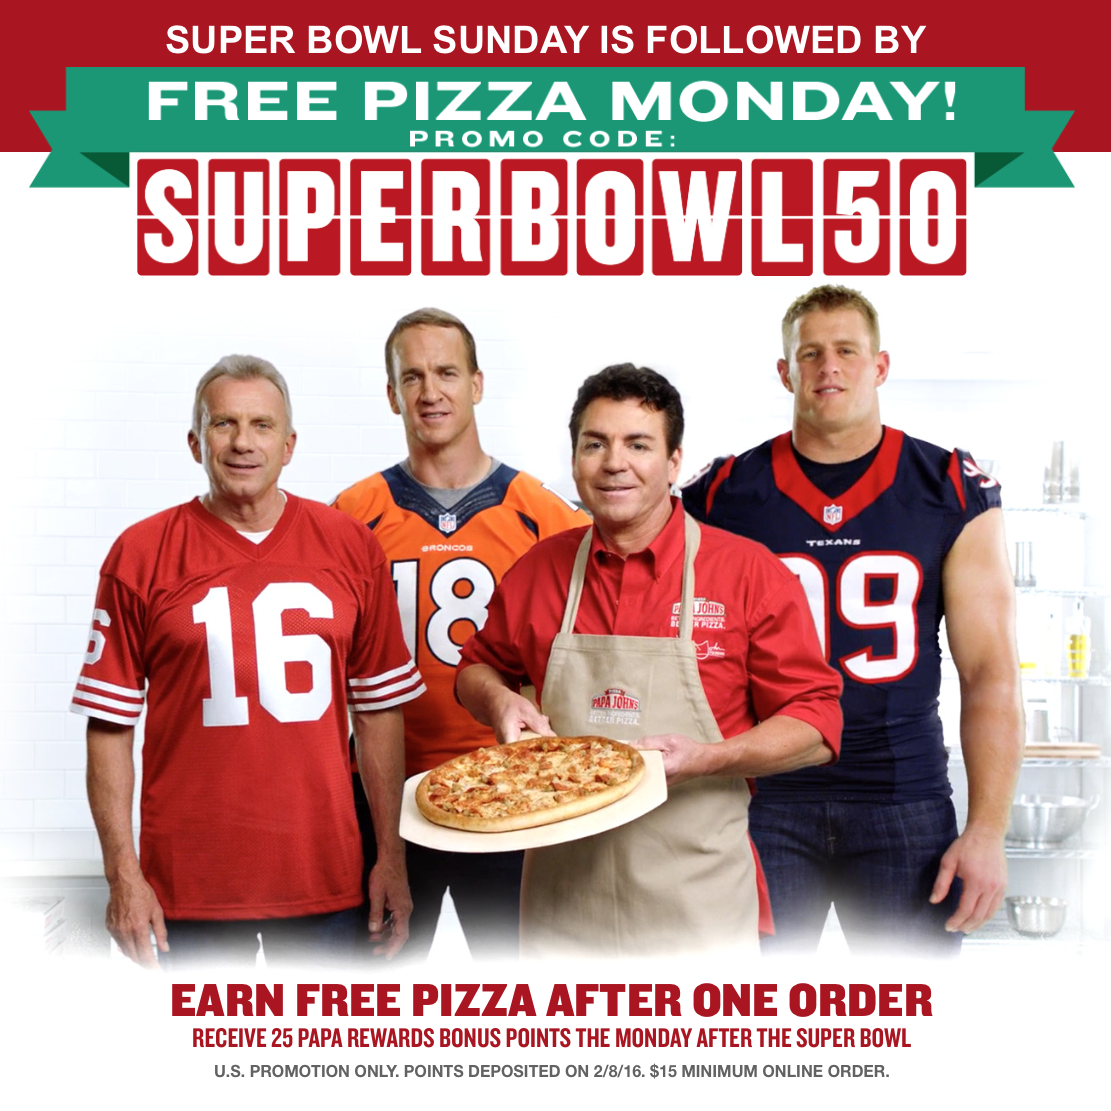 Papa John's Super Bowl Free Pizza